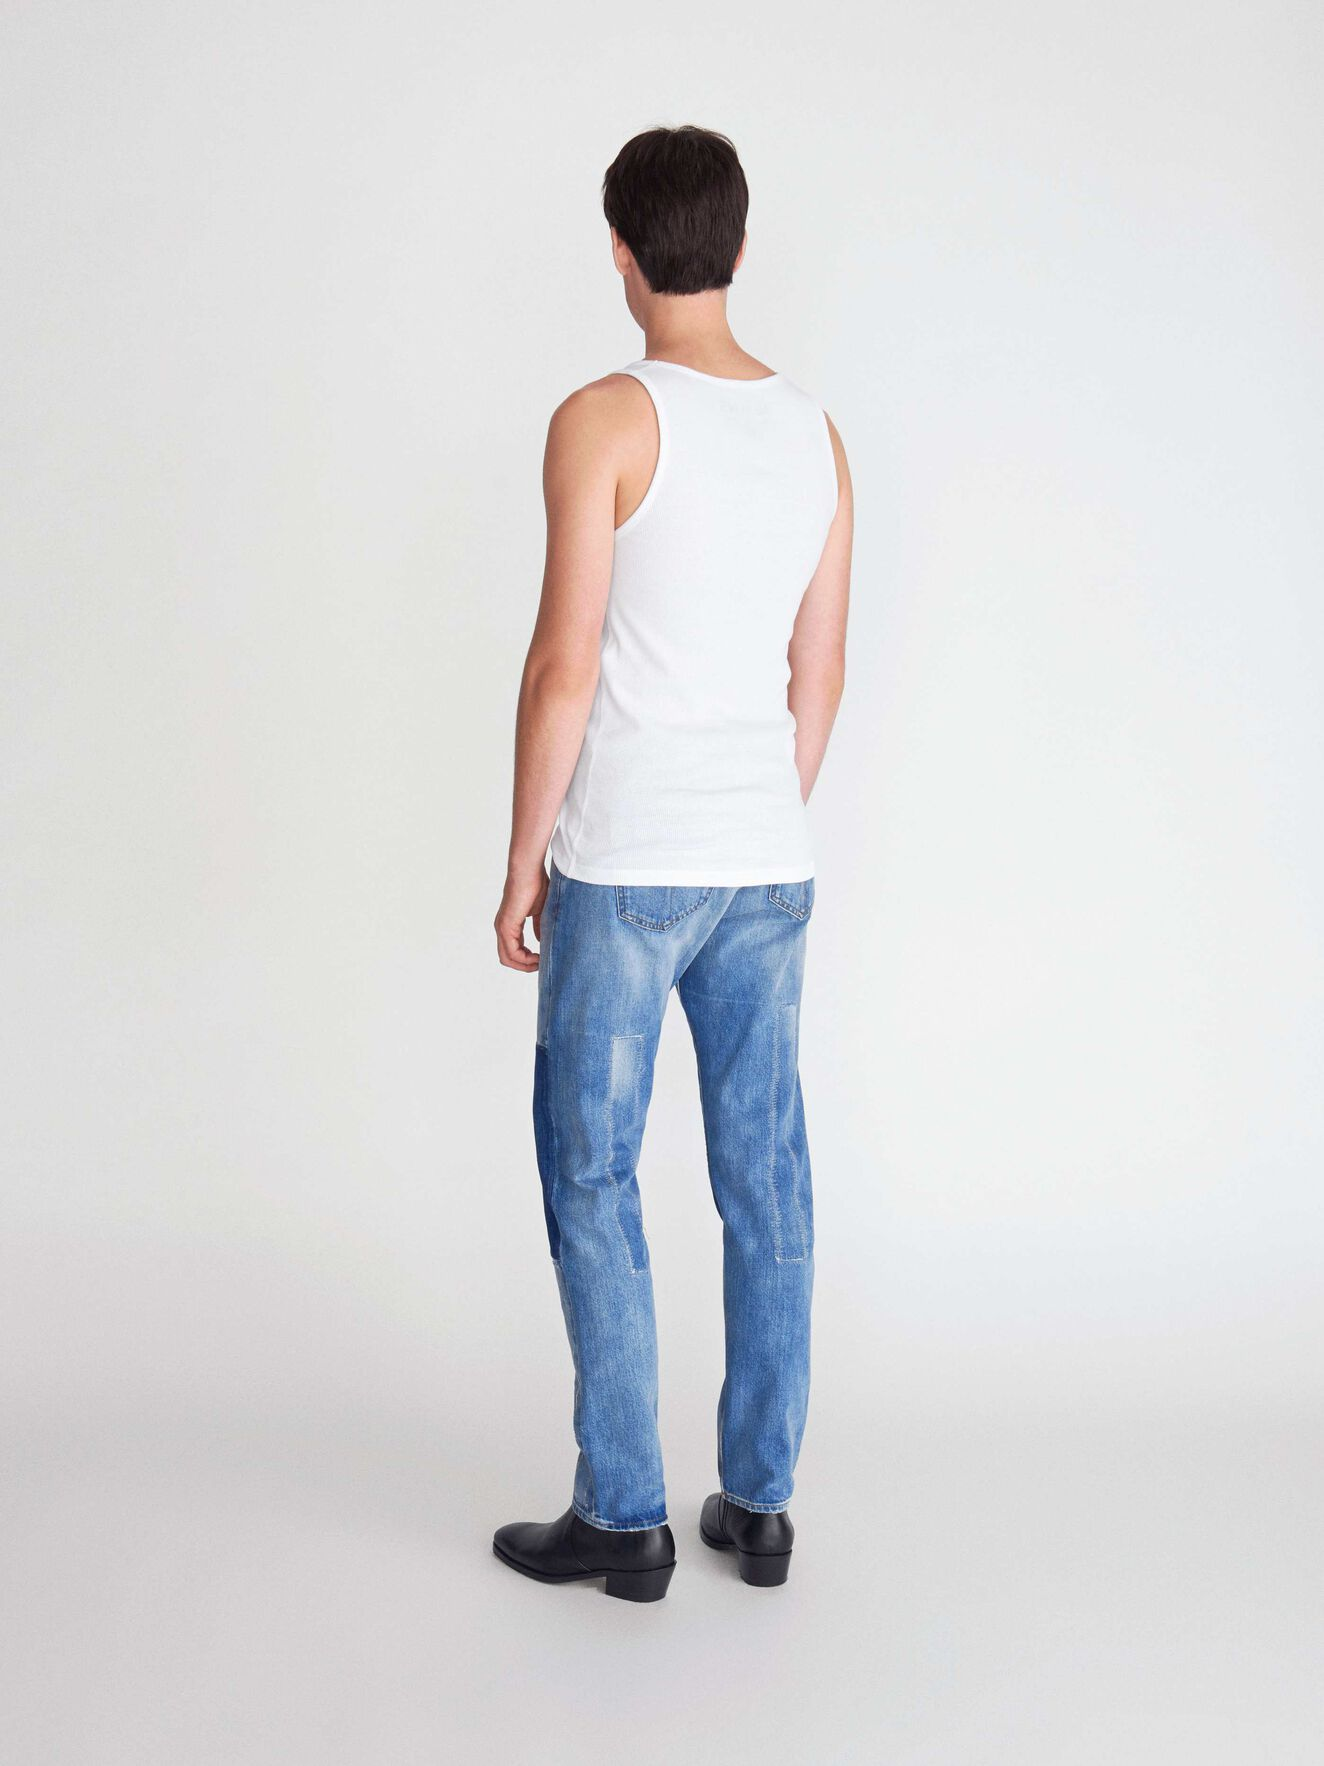 Bhanan Tank Top in White from Tiger of Sweden